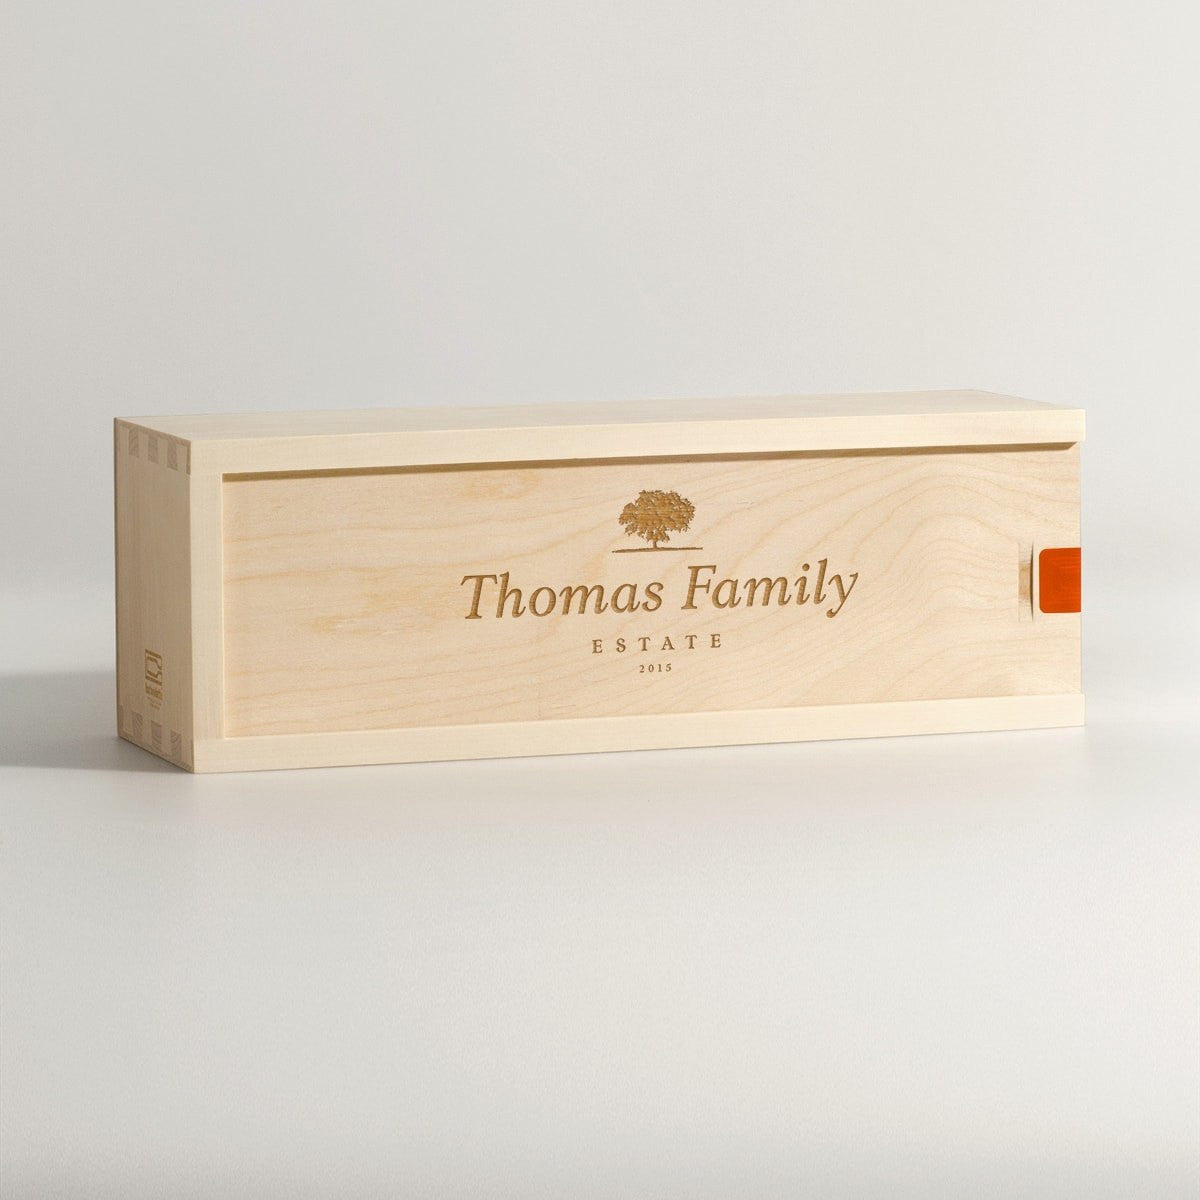 Family Estate - Wine Box - Main Image